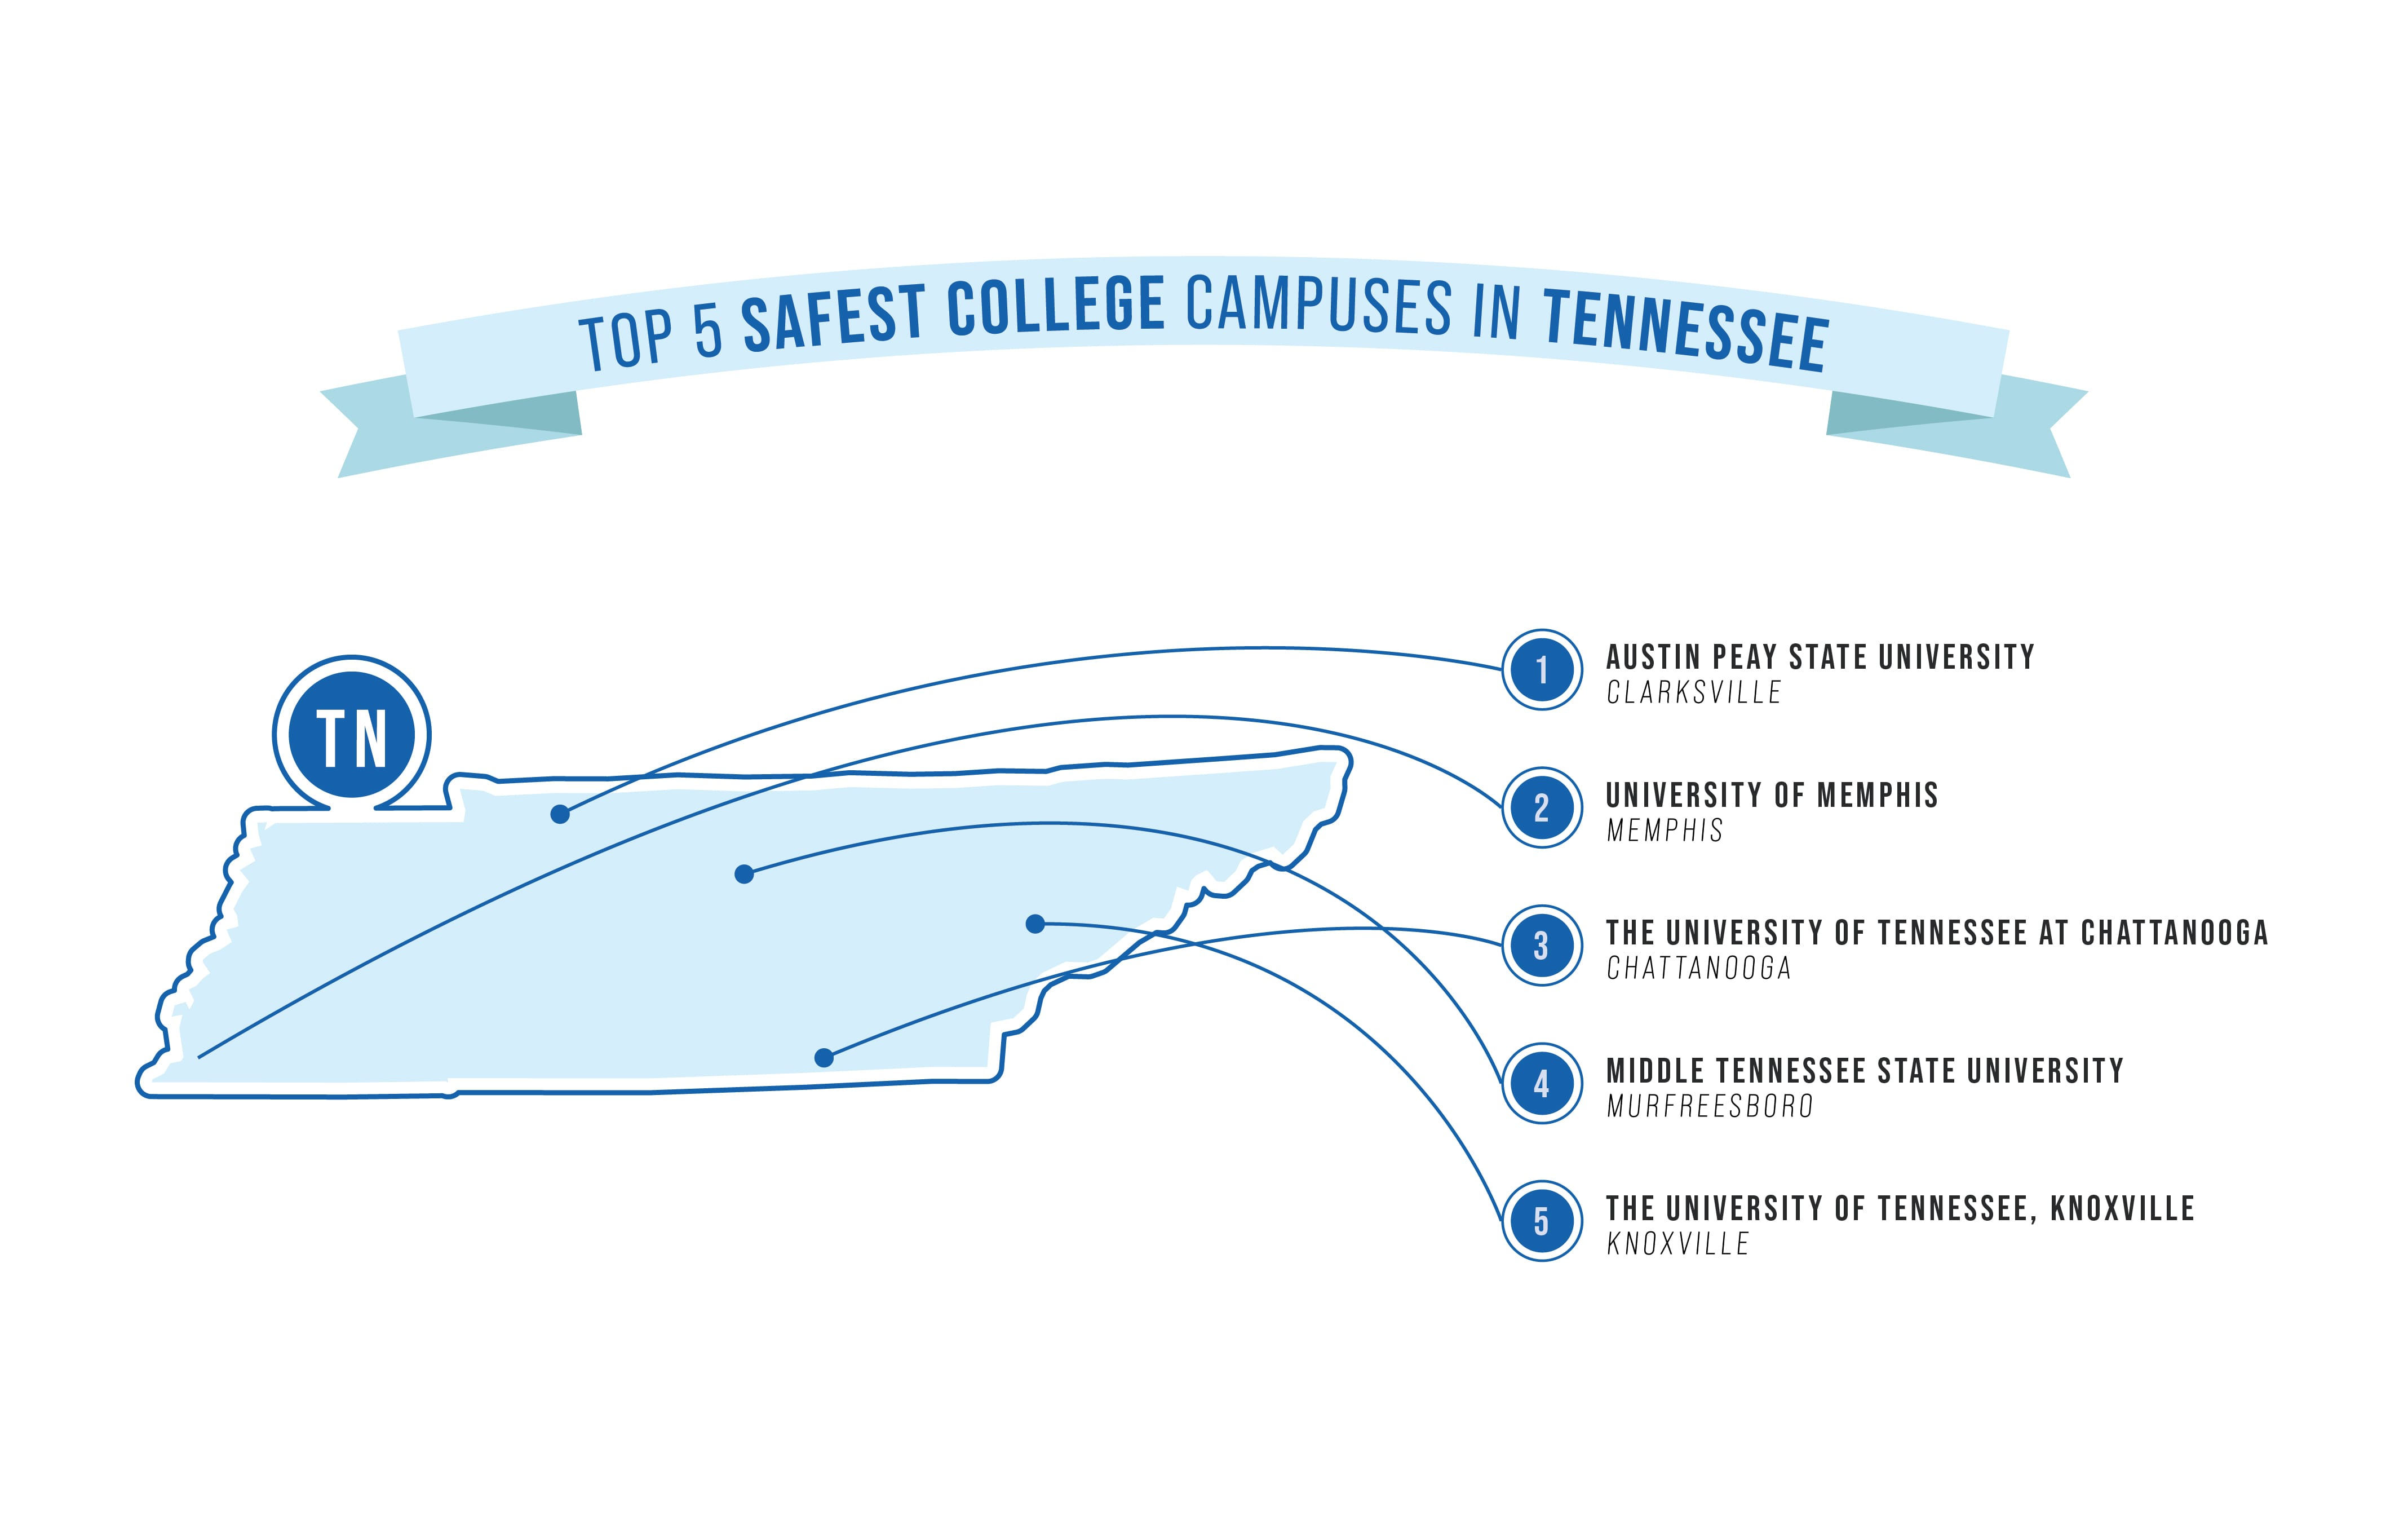 safest college campuses in TN